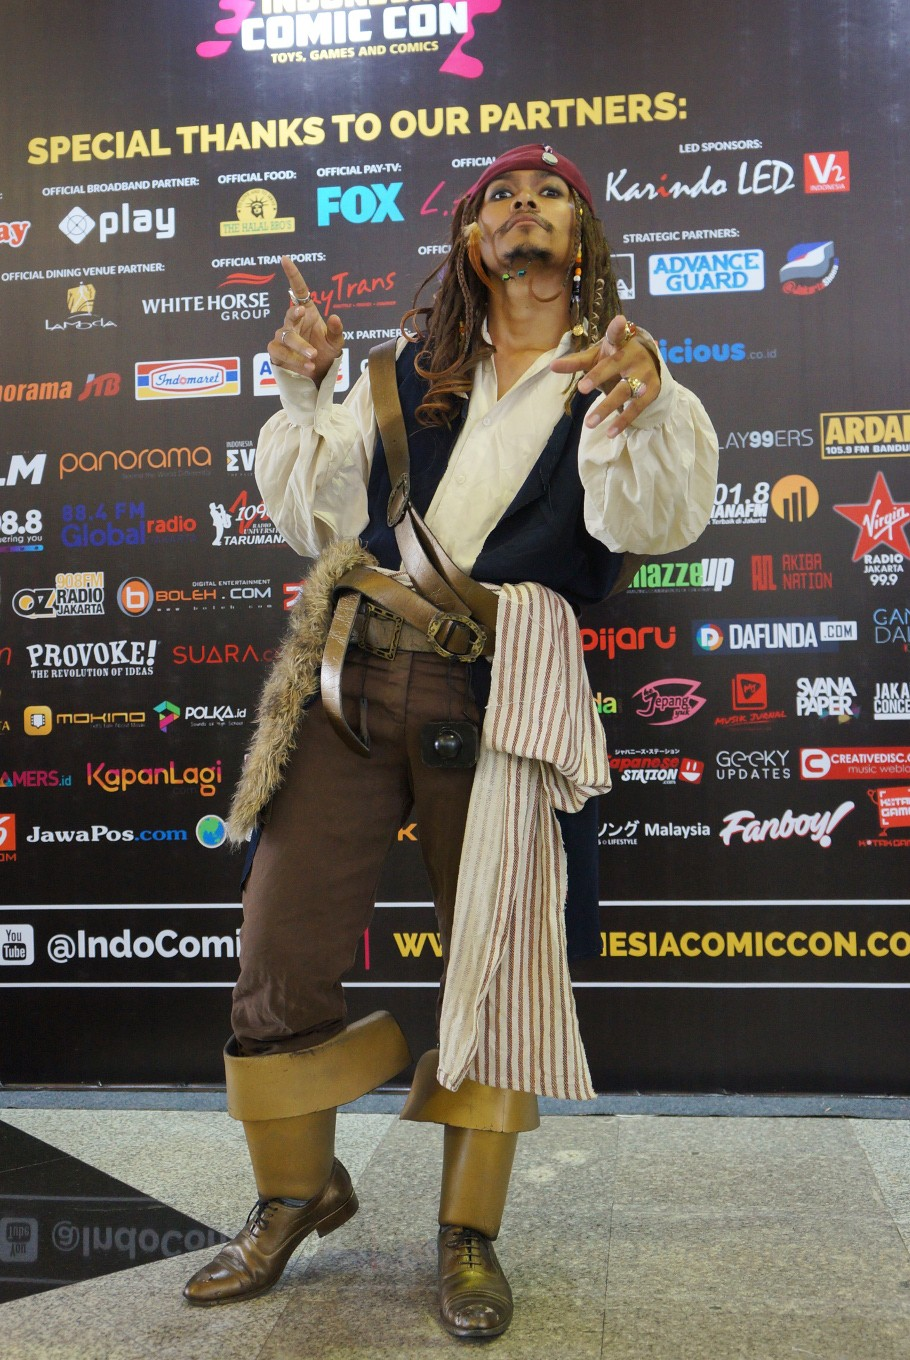 A 2017 Indonesia Comic Con visitor is dressed as Jack Sparrow from the 'Pirates of the Caribbean' movies.